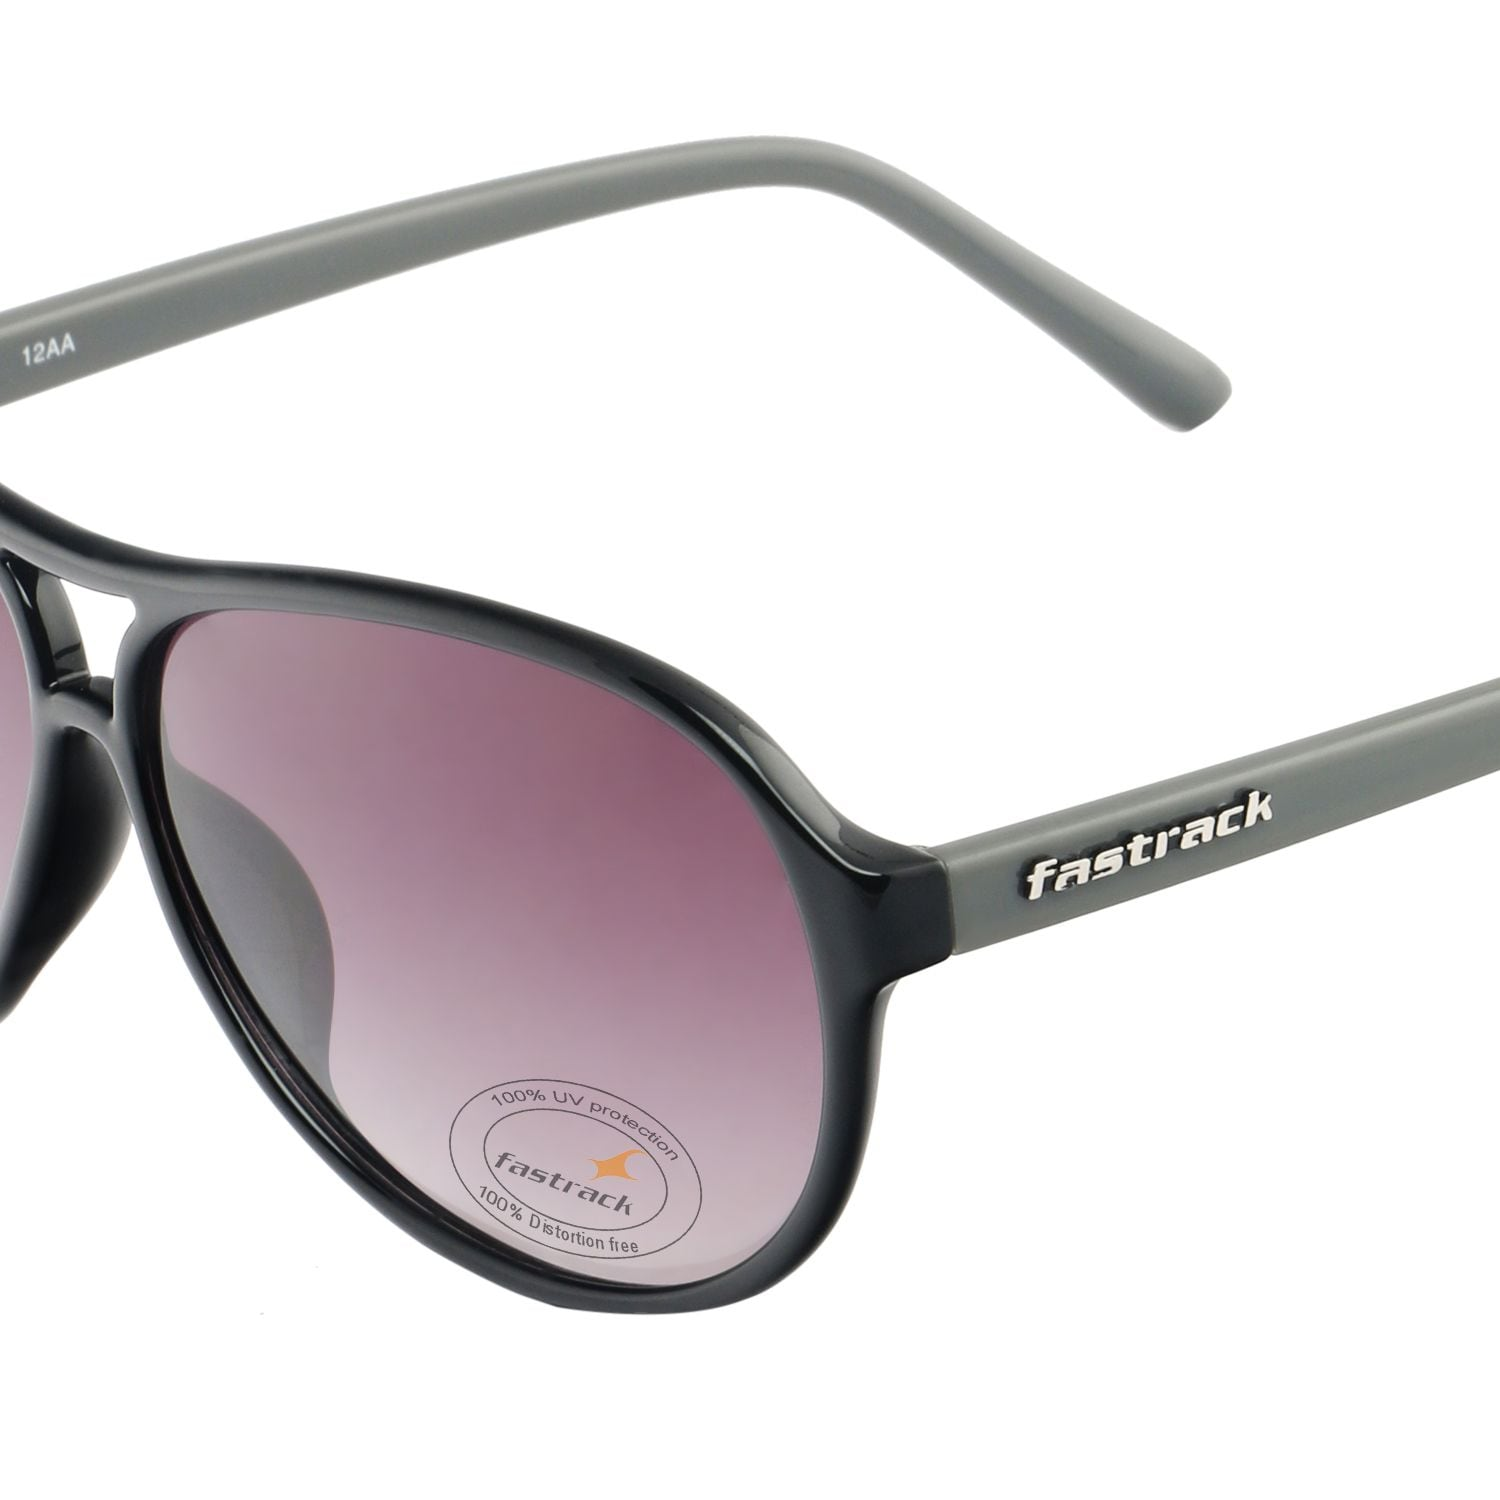 fast track sunglasses 8ai4  Login to see who was here